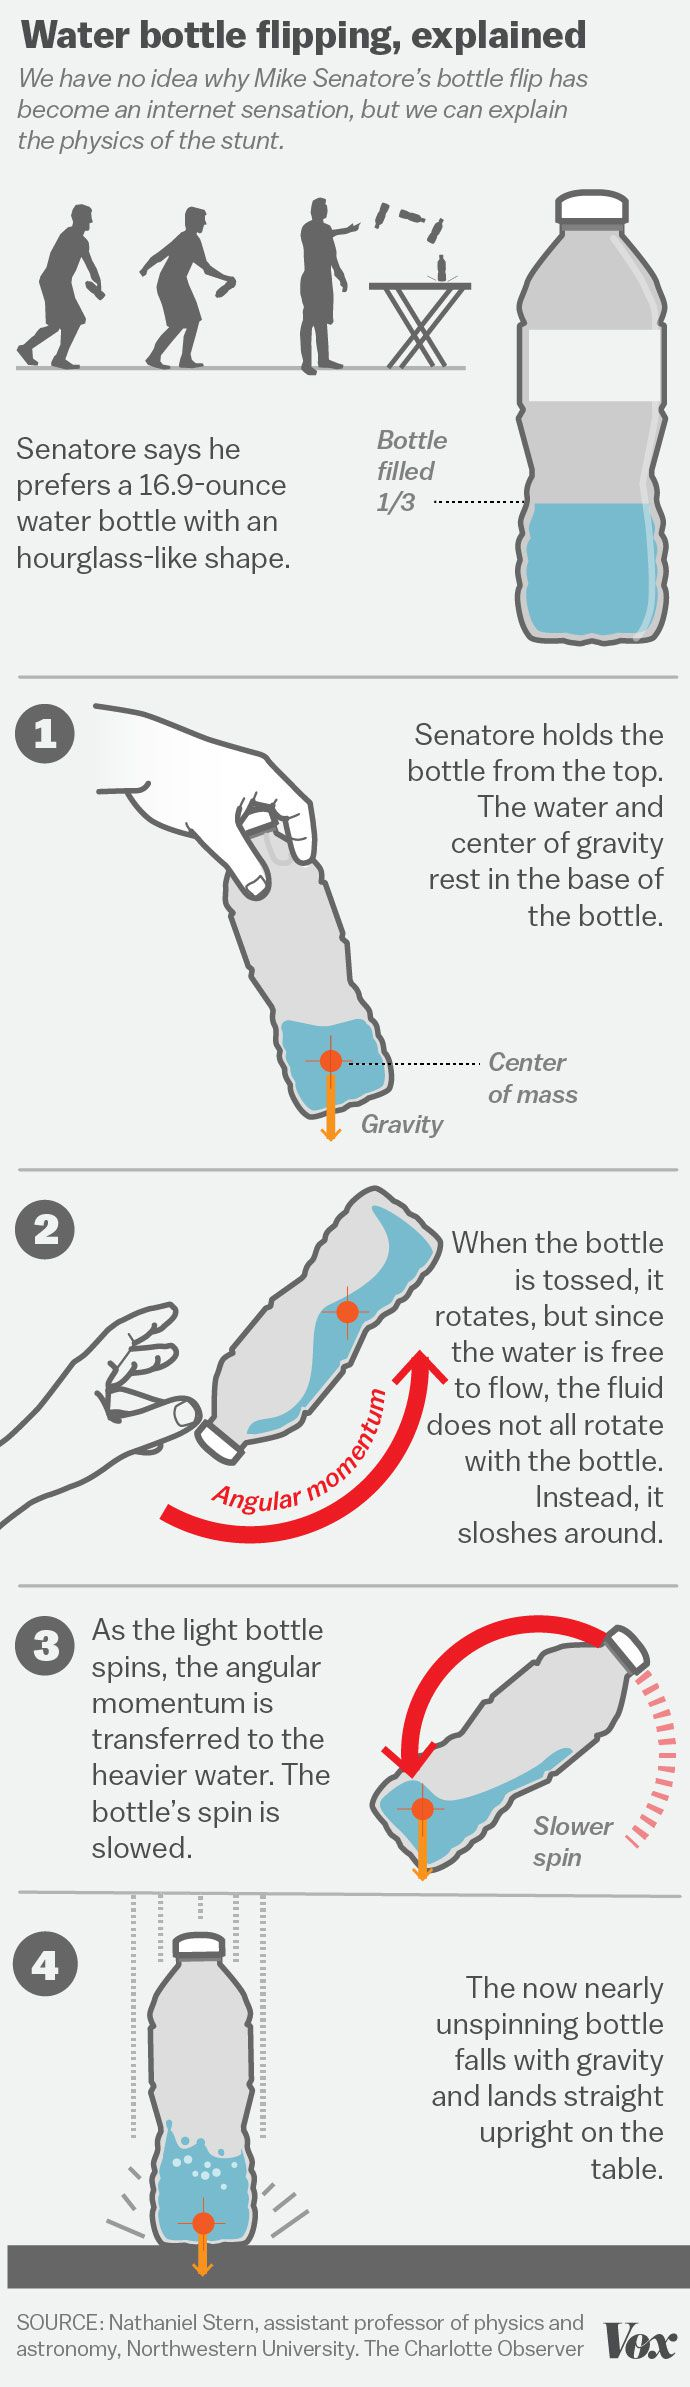 The Complex Physics Of That Viral Water Bottle Trick Explained Vox Free Body Diagrams Examples Science Dynamics Showme Angular Momentum Fluid Amazing